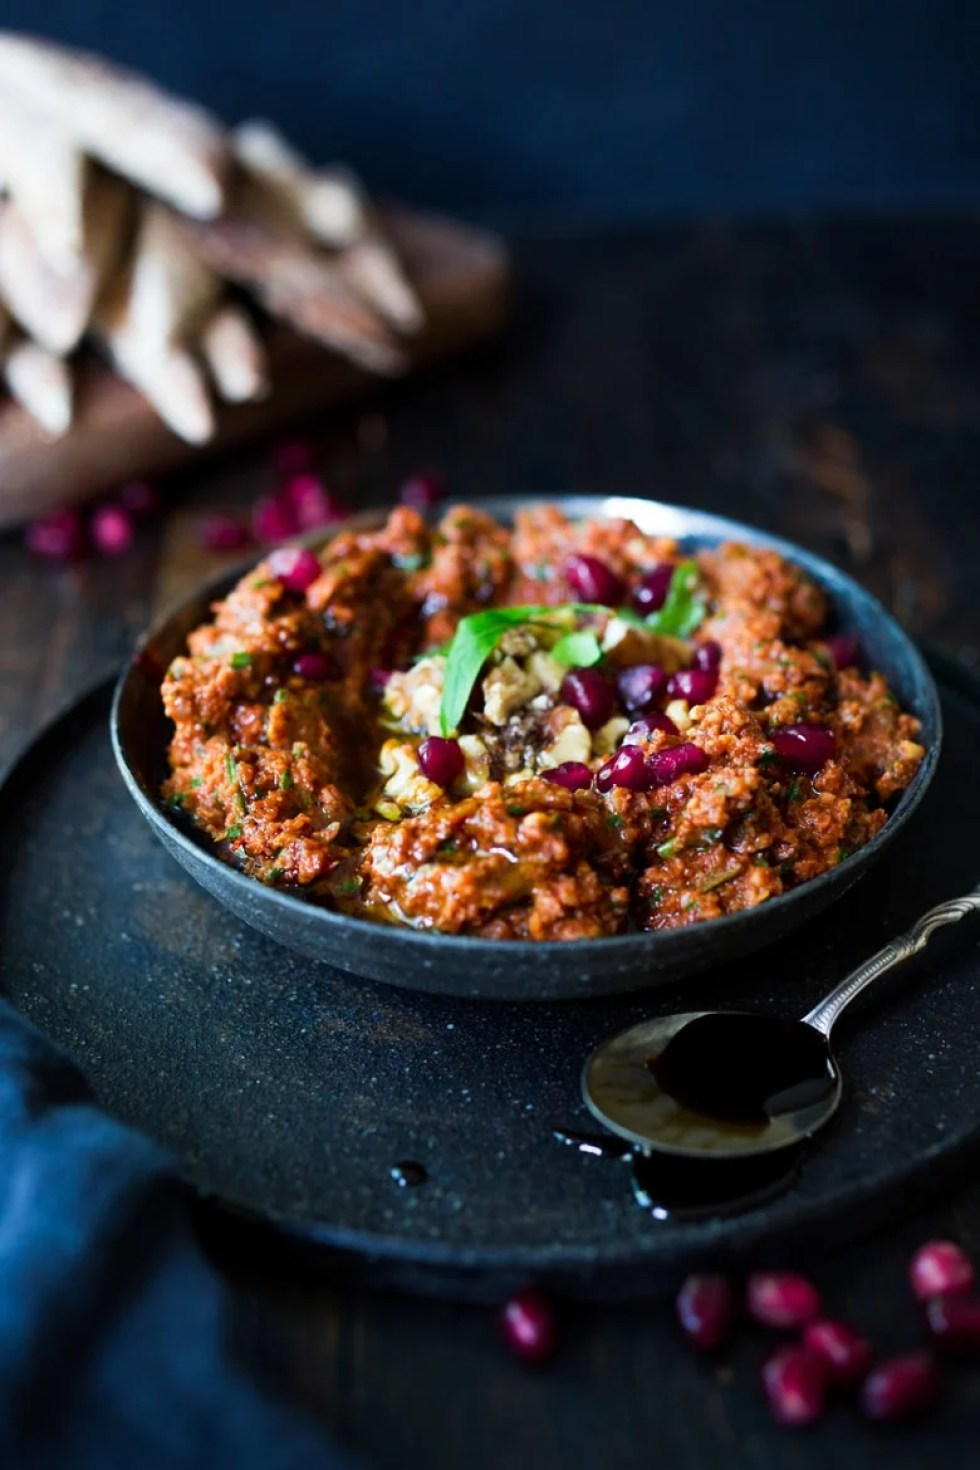 Muhummara Dip - a simple flavorful Middle Eastern Roasted Pepper & Walnut Dip that can be made ahead in food processor. Perfect for parties and gatherings, serve with toasted pita or crackers.   www.feastingathome.com